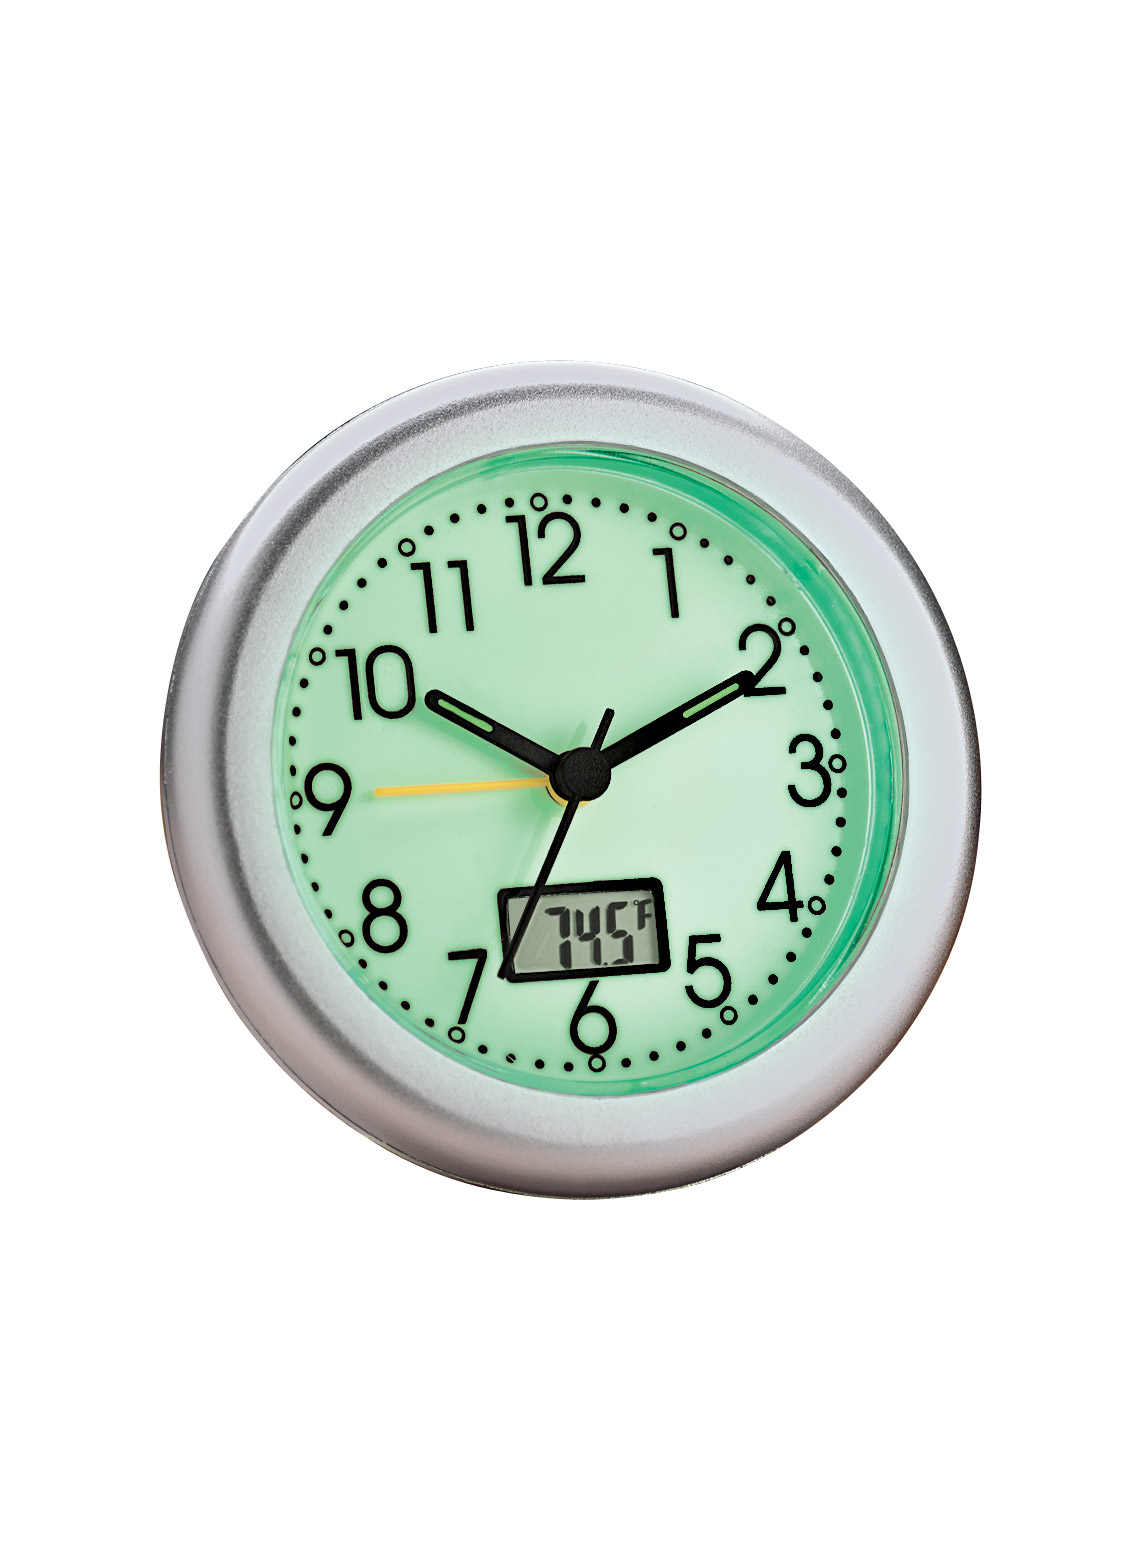 Glow in the dark alarm clock w thermometer carolwrightgifts glow in the dark alarm clock w thermometer loading zoom amipublicfo Images